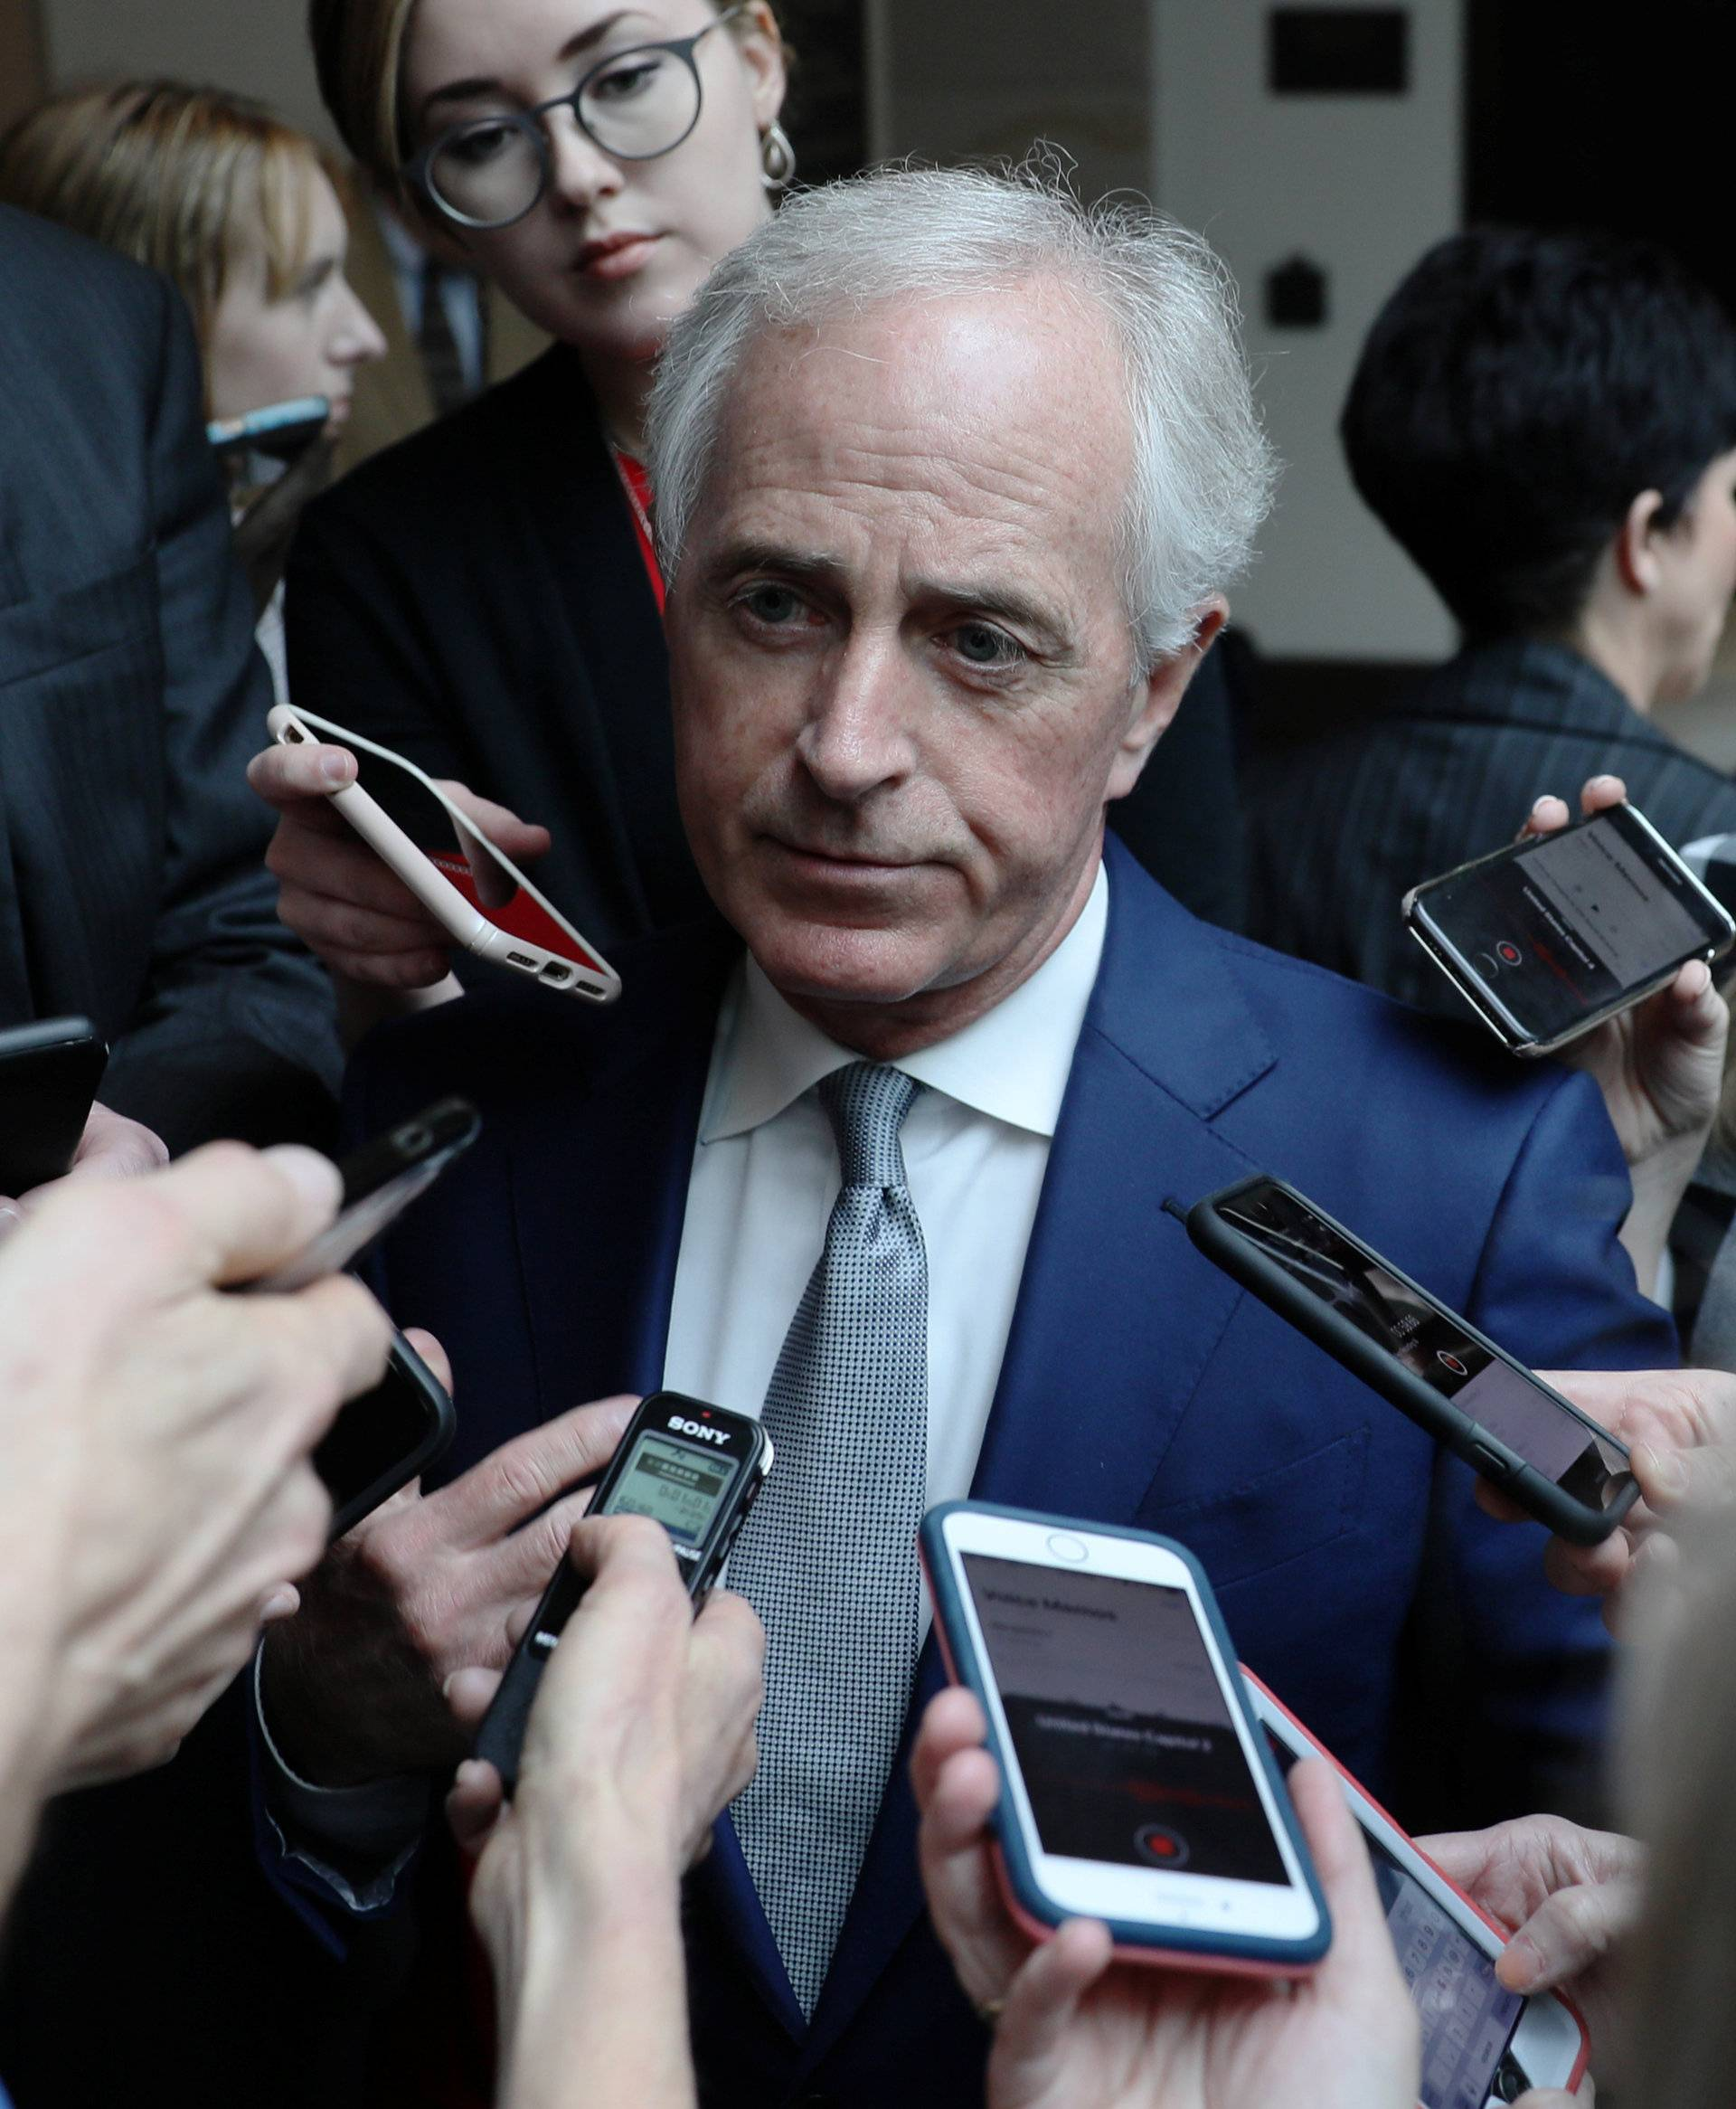 U.S. Senator Corker speaks to reporters after attending a closed-door briefing, on the Khashoggi death, by CIA Director Haspel at the U.S. Capitol in Washington